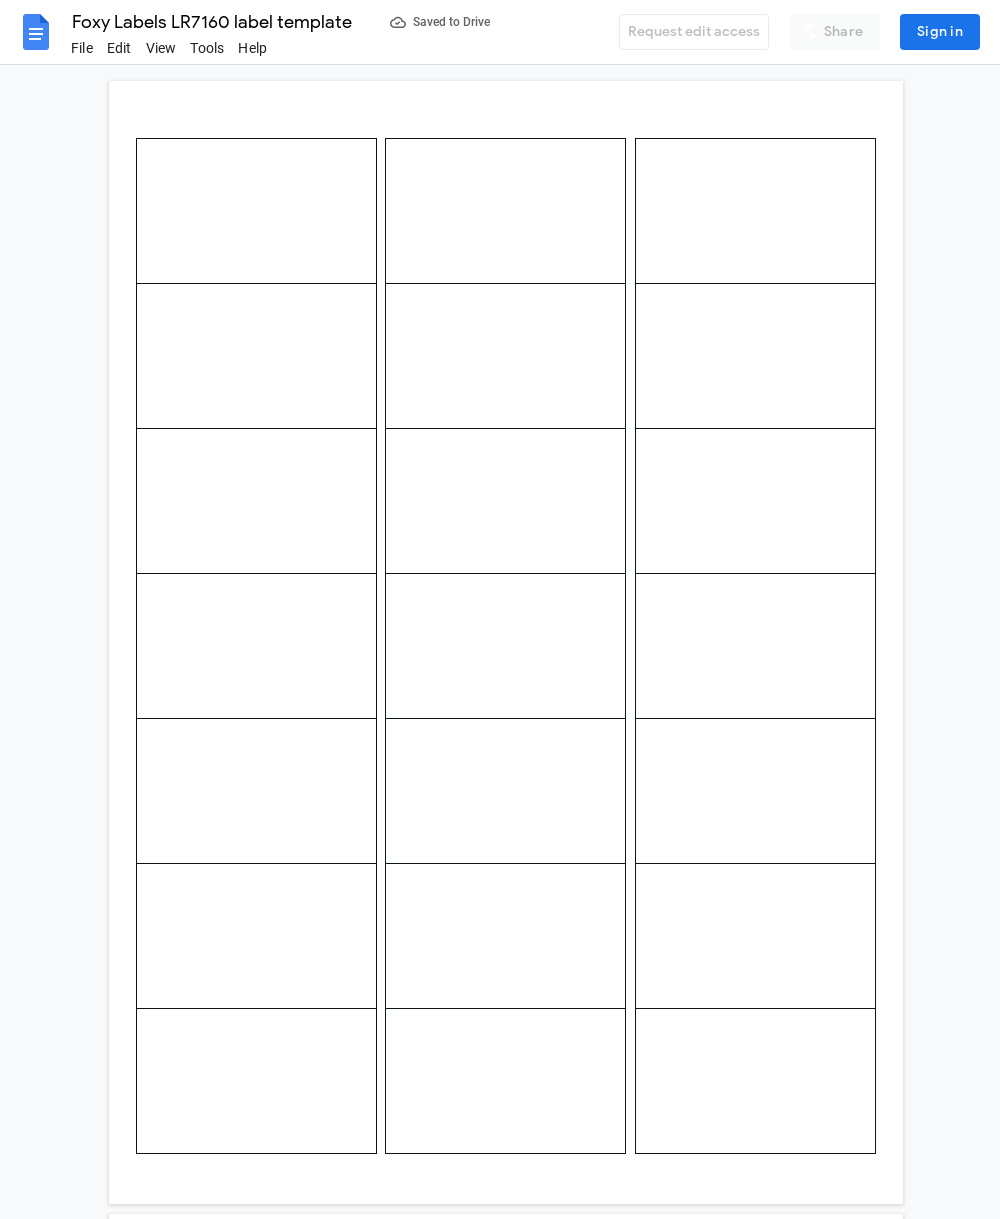 Avery LR7160 Label Template